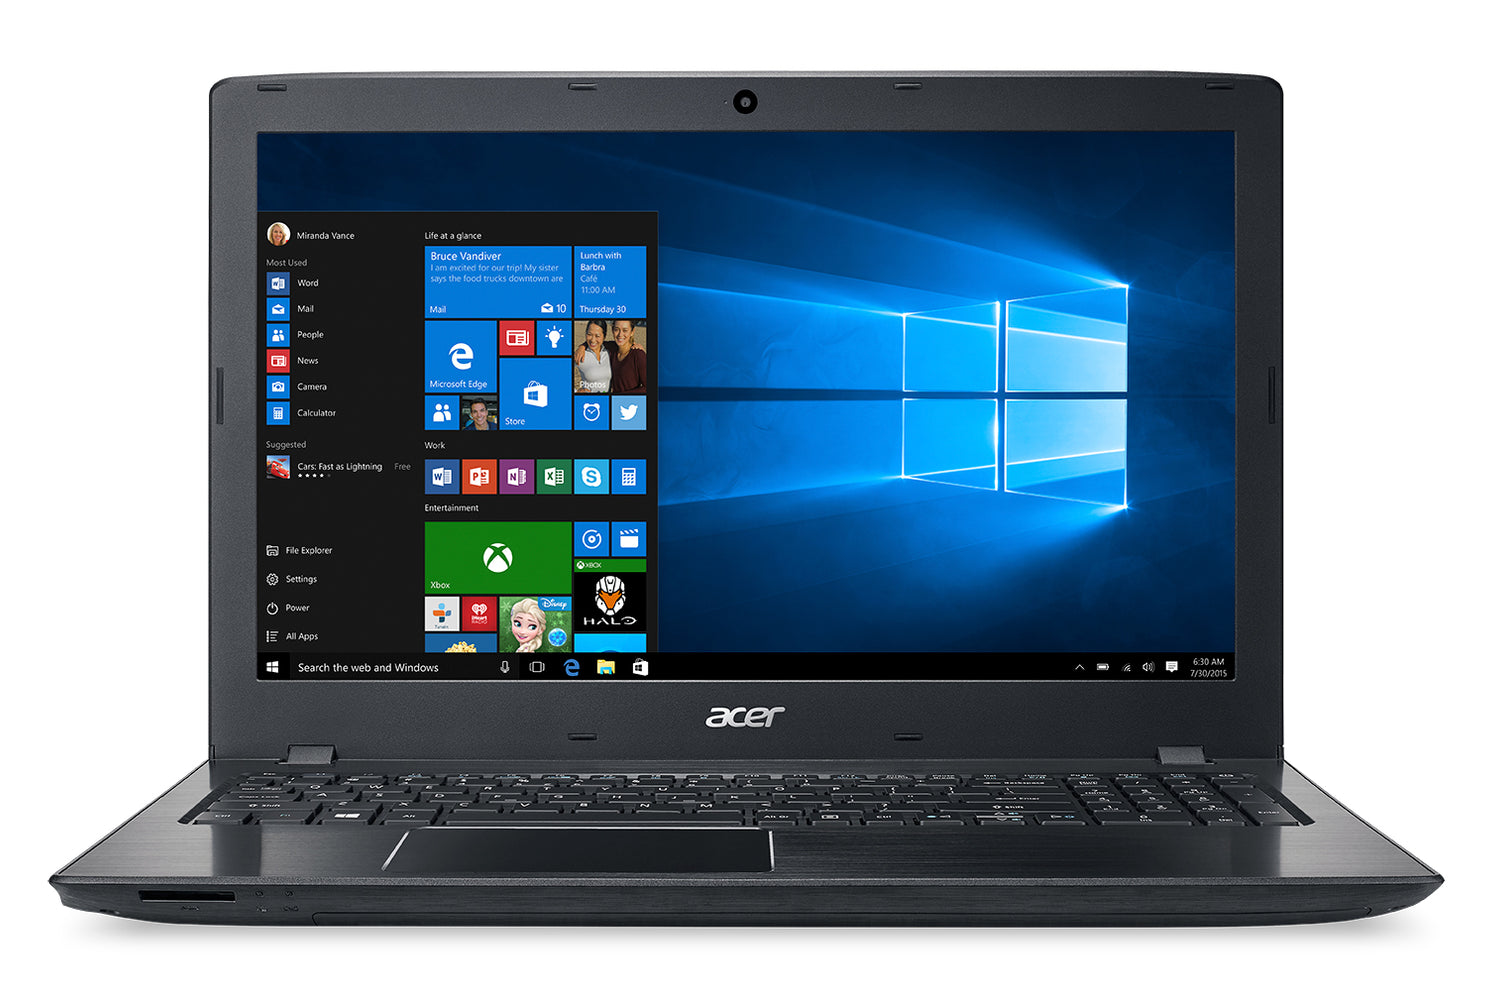 "Acer Aspire E5-575-72N3, 15.6"" Full HD, 7th Gen Intel Core i7-7500U, 8GB DDR4, 1TB HDD, Windows 10 Home"